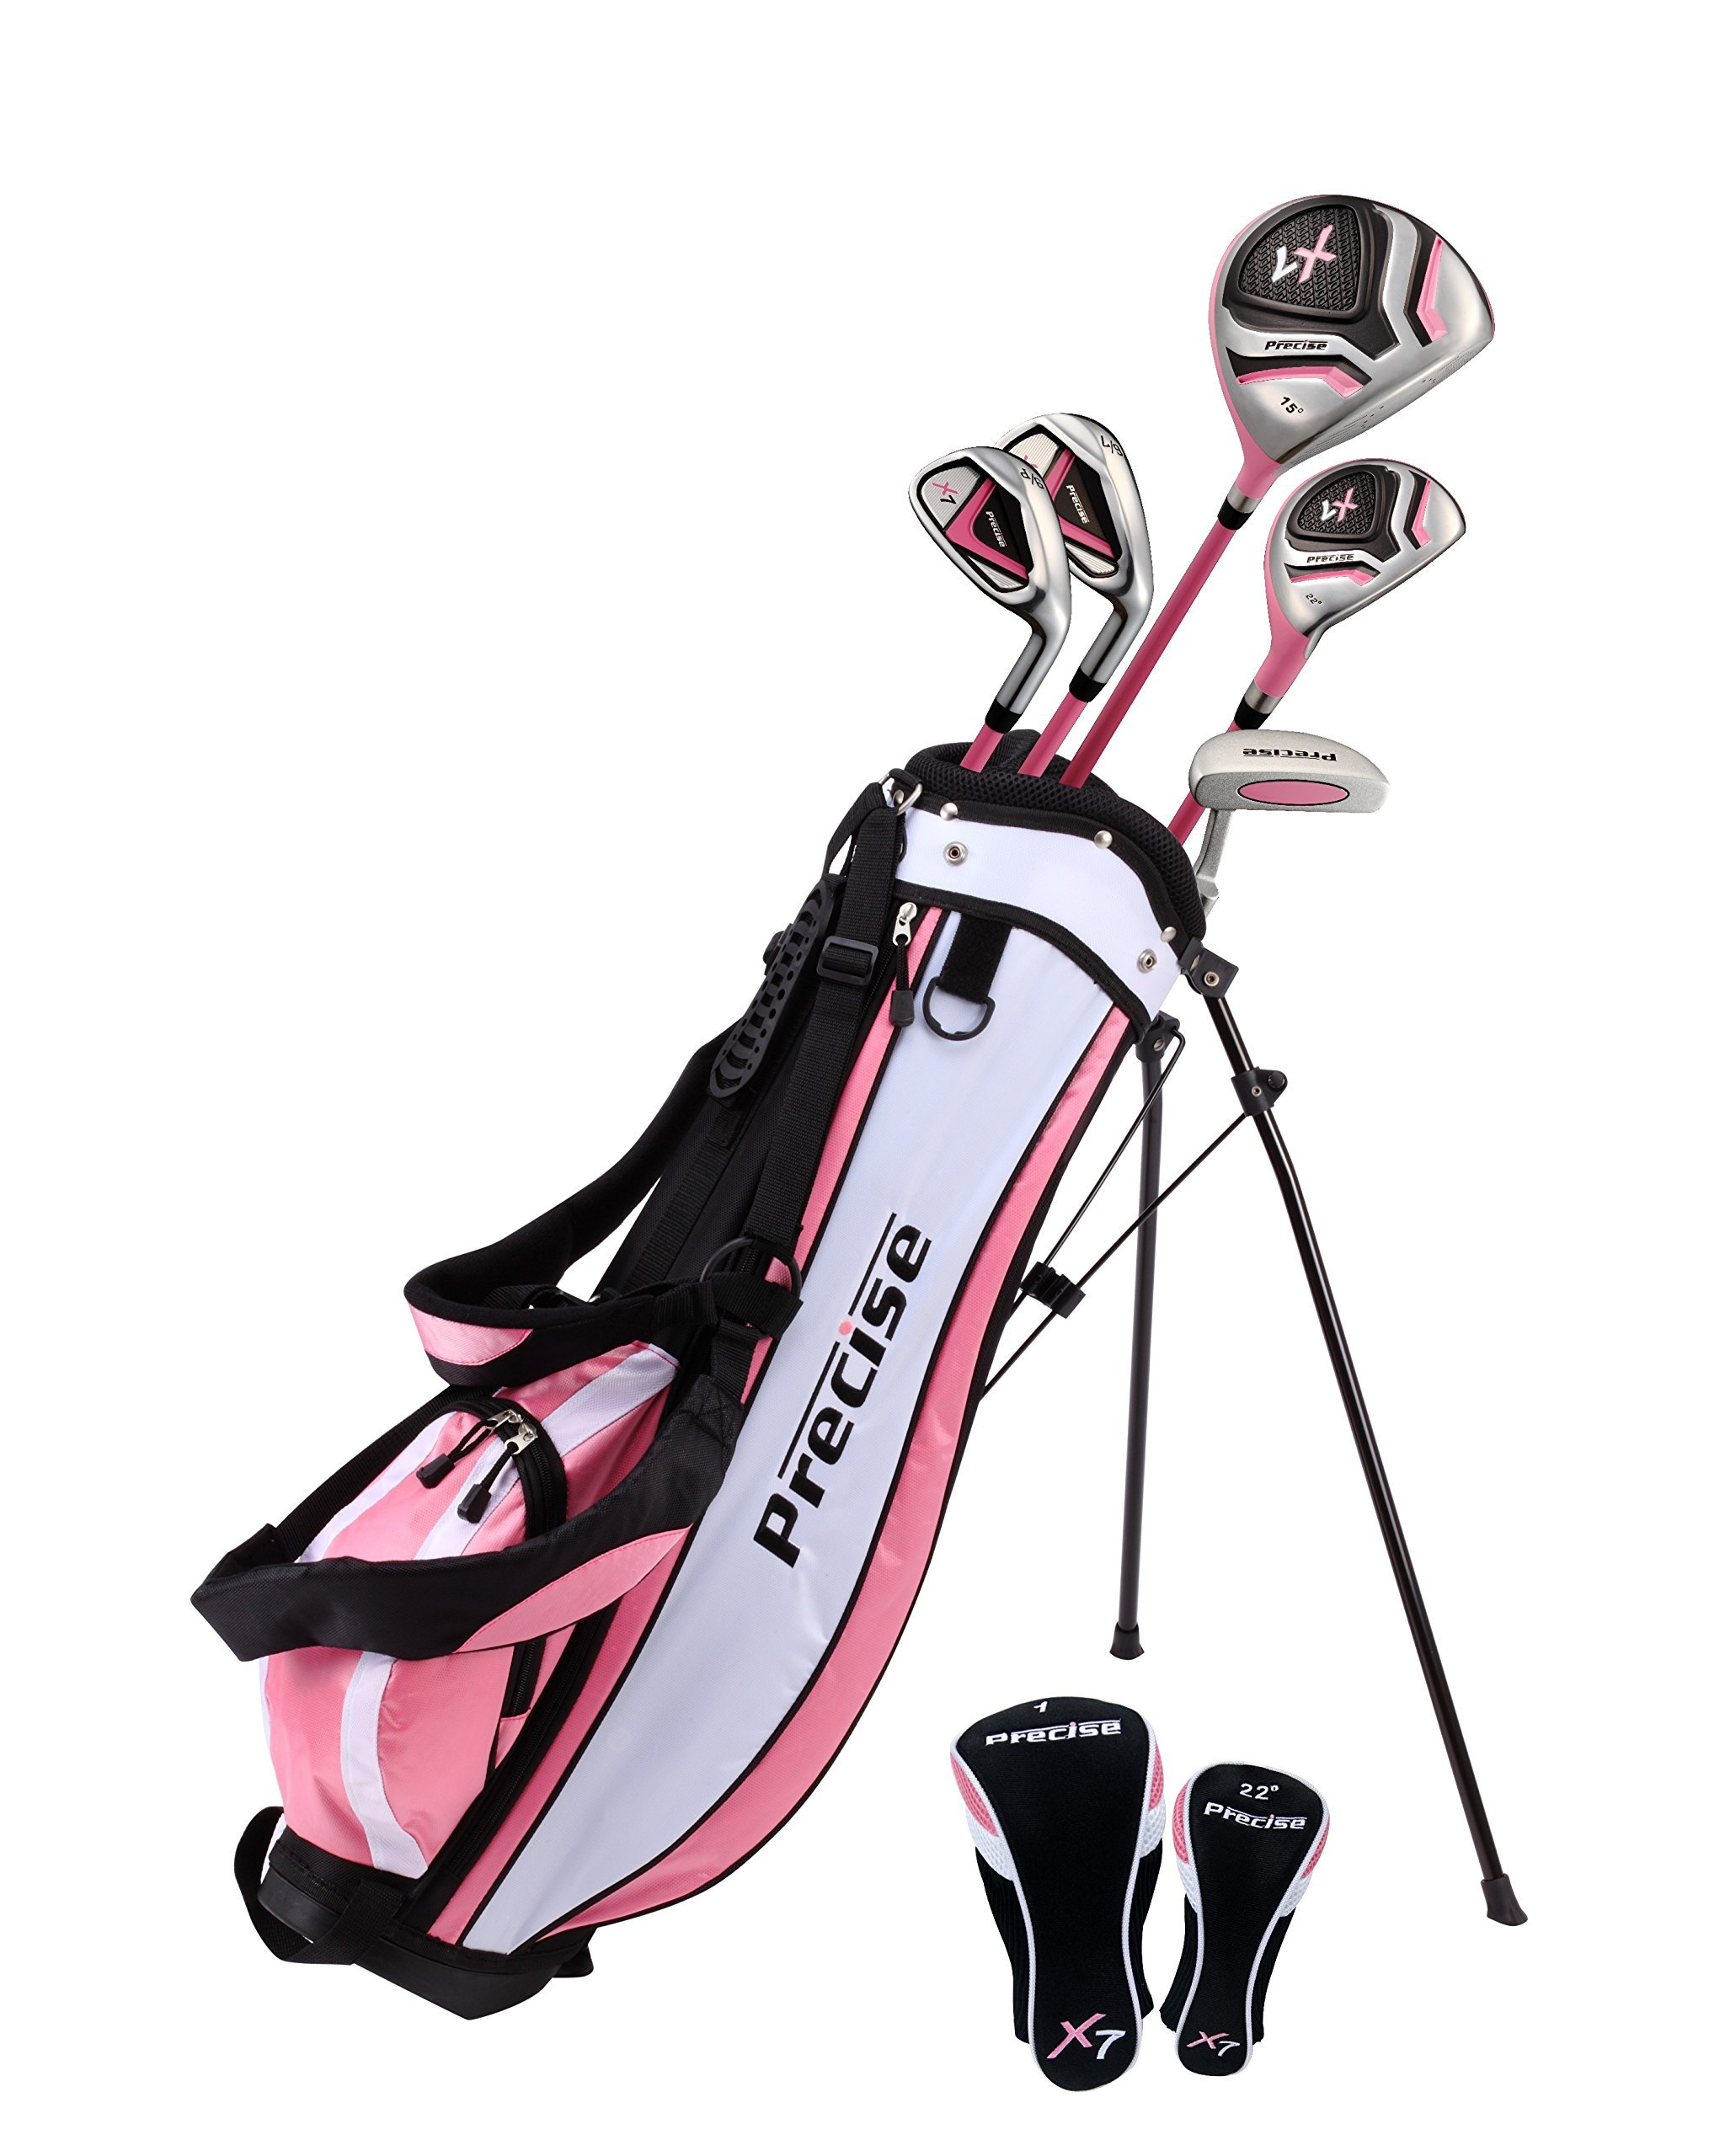 Distinctive Girls Pink Junior Golf Club Set for Age 6 to 8  ( Height 3'8'' to 4'4'' ), Left Handed Only,  Set Includes: Driver, Hybrid Wood, 2 Irons, Putter, Bonus Stand Bag & 2 Headcovers by Precise